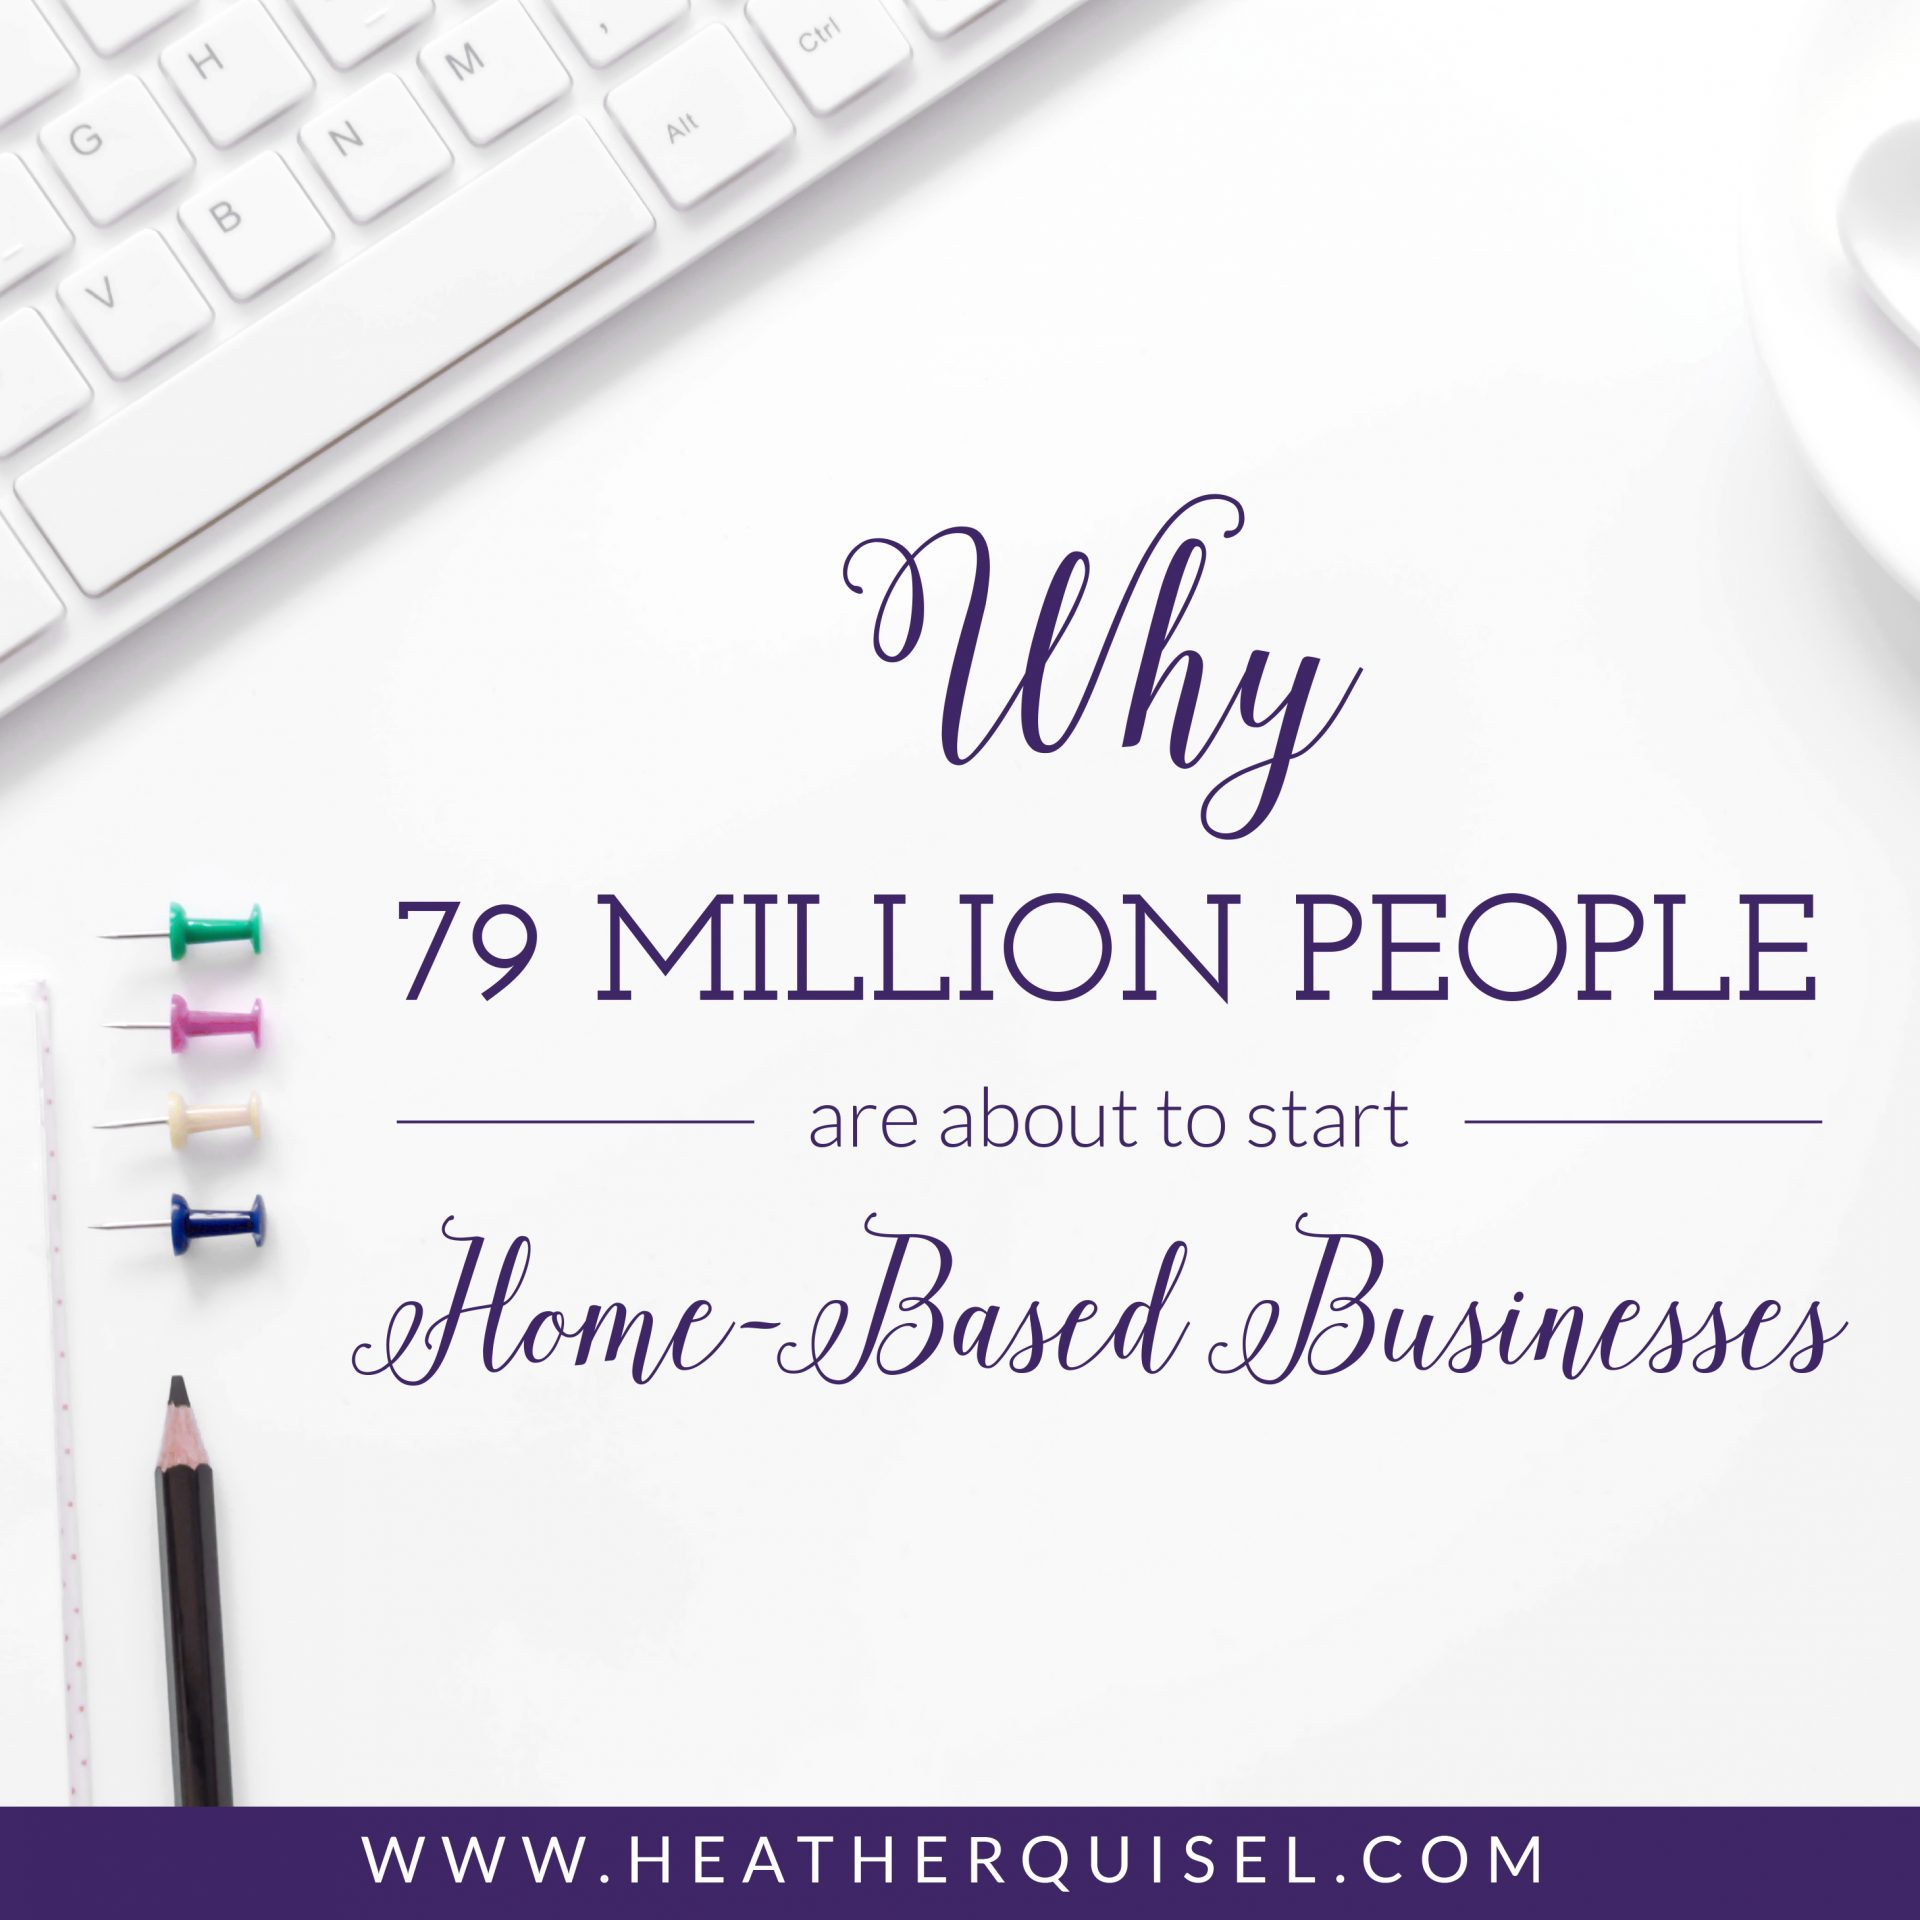 Why 79 Million People are About to Start Home-Based Businesses ...